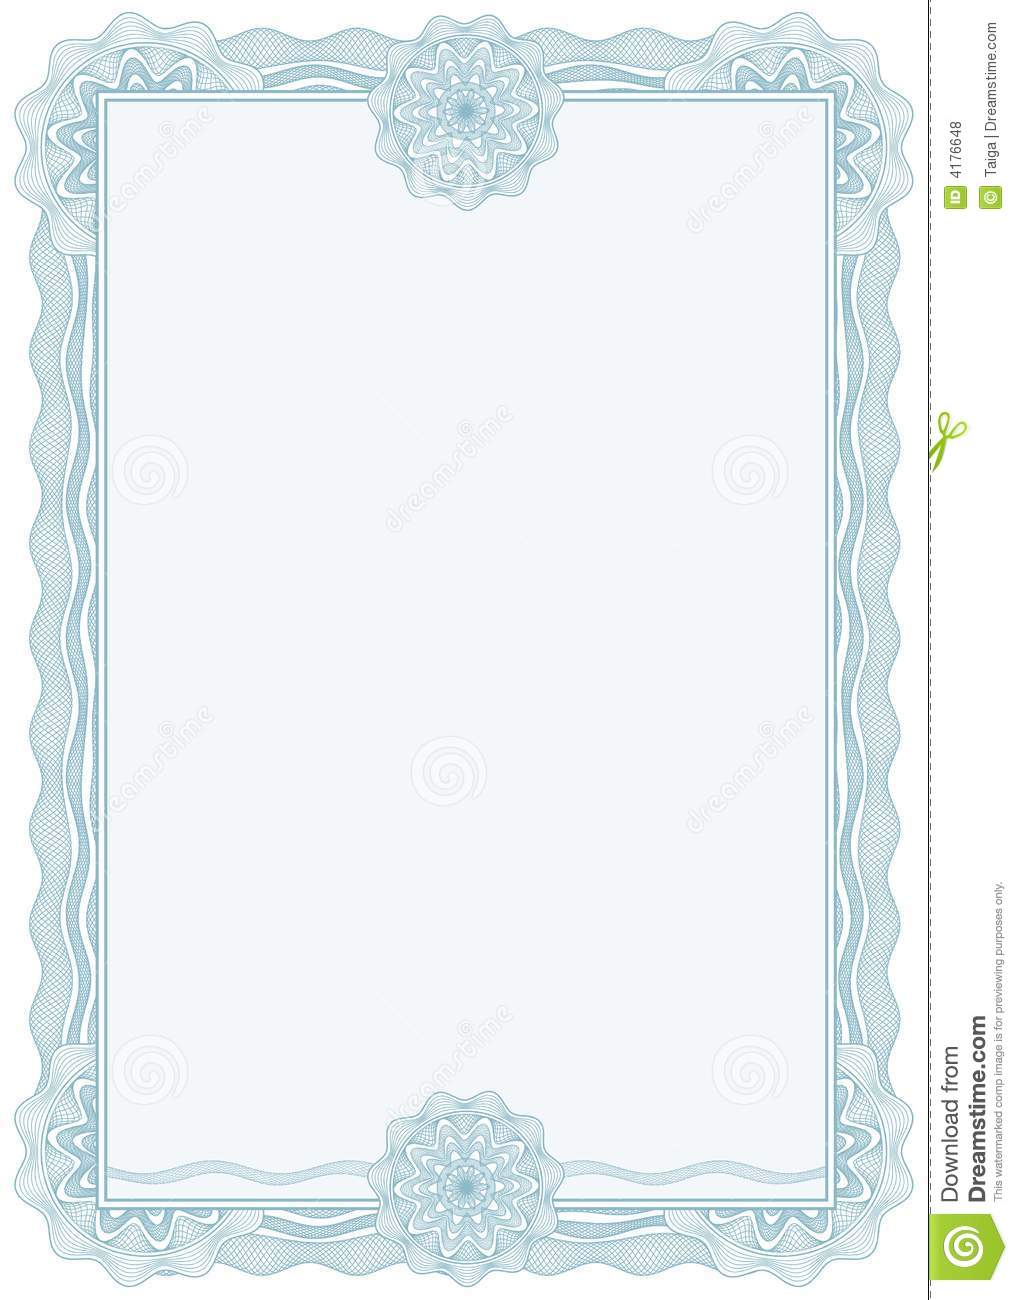 Diploma or certificate border a4 vector stock vector diploma or certificate border a4 vector yadclub Image collections